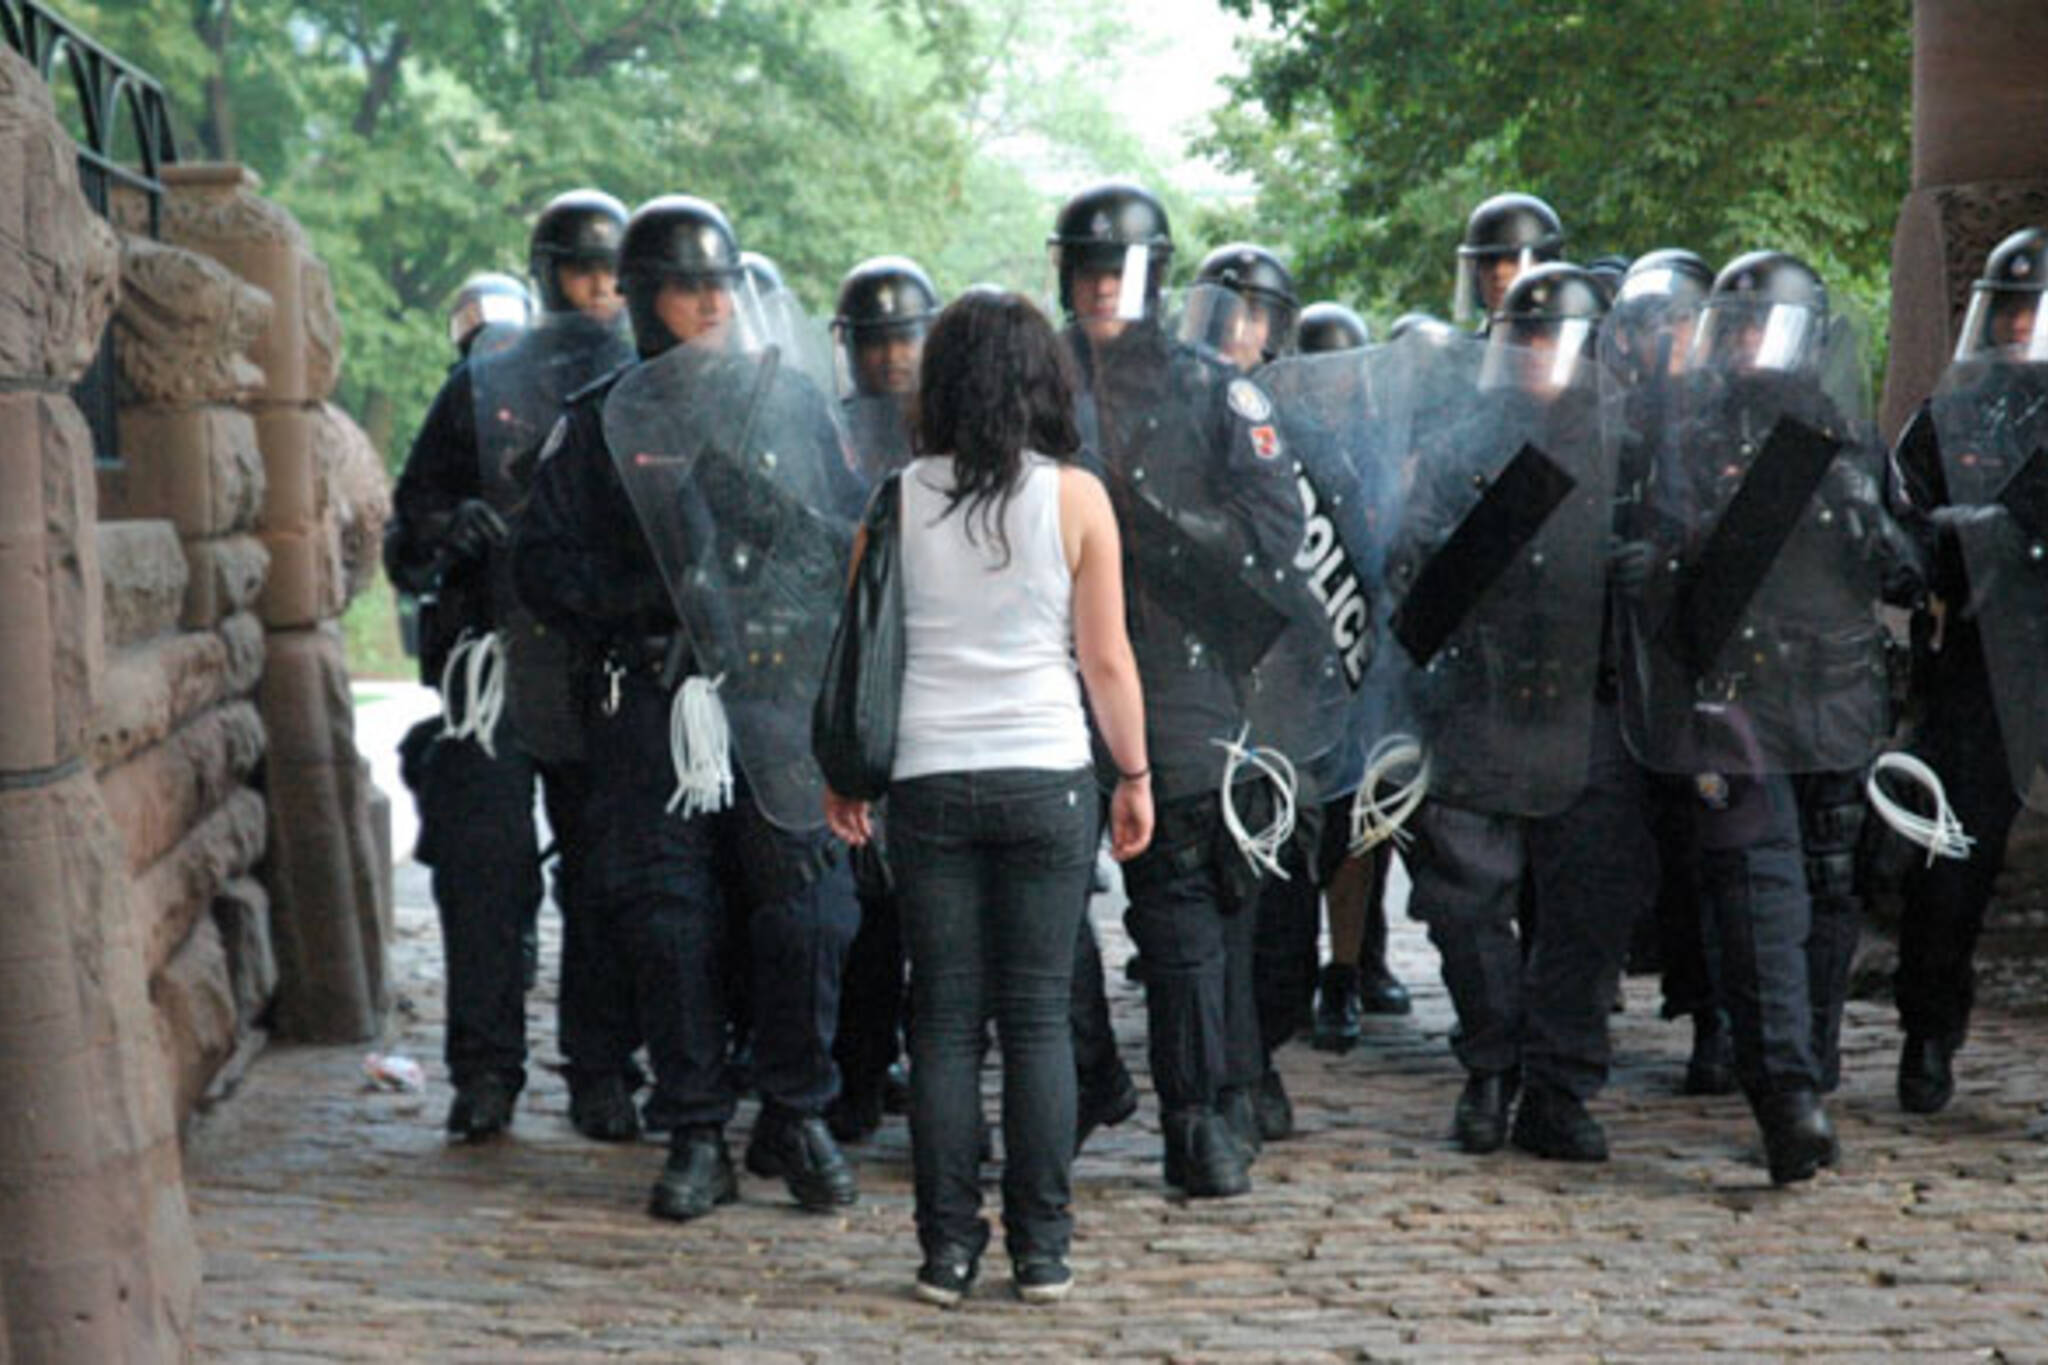 G20 protests at Queens Park